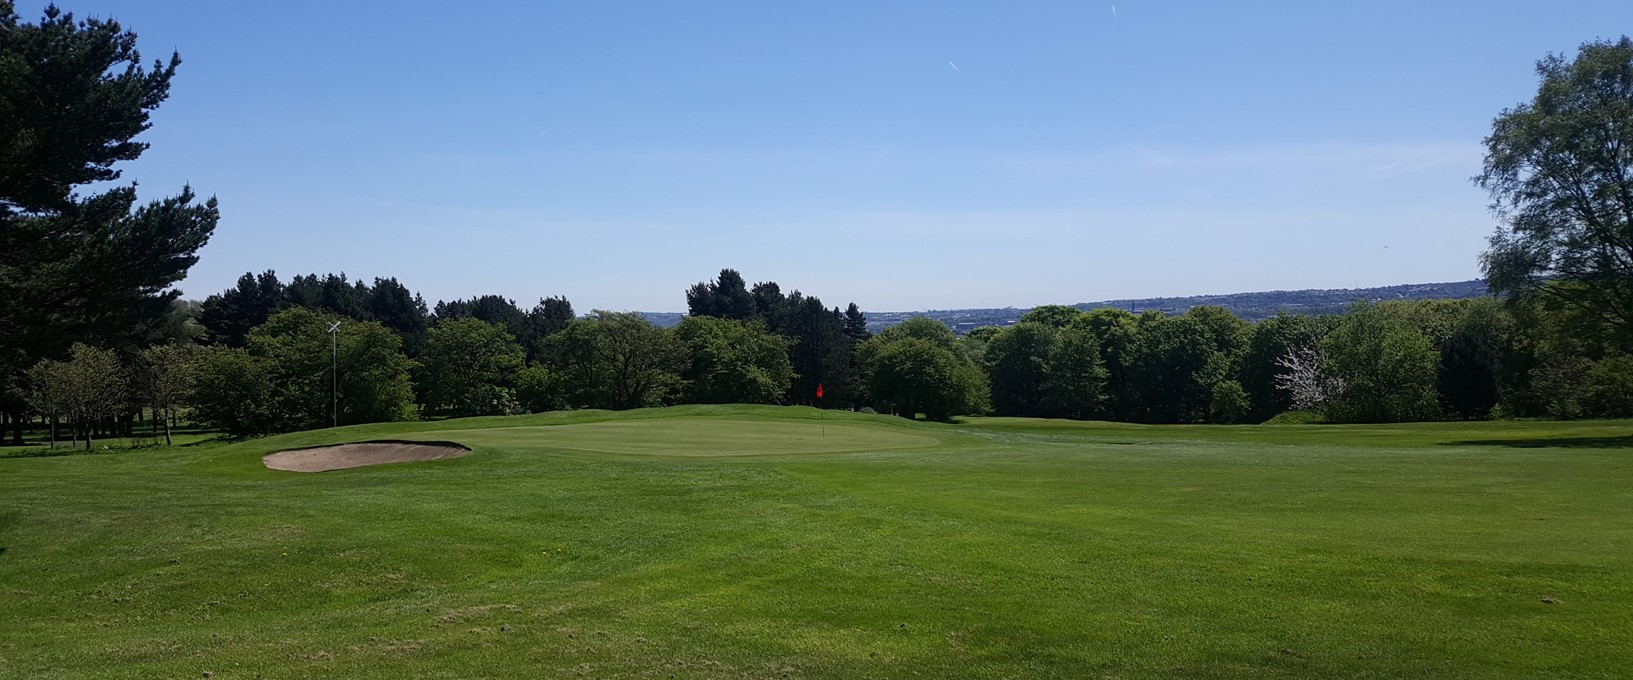 The 6th green at West Bradford Golf Club